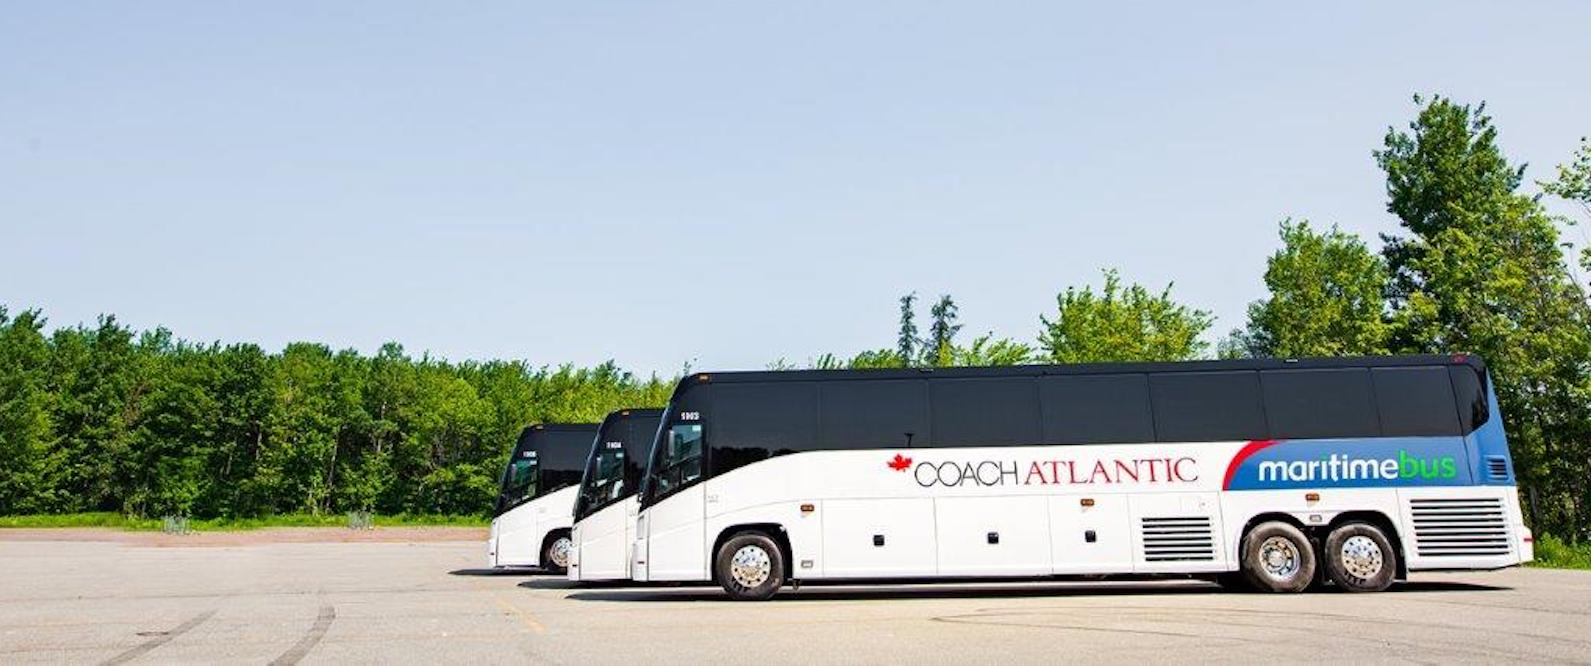 three coach atlantic maritime bus coaches